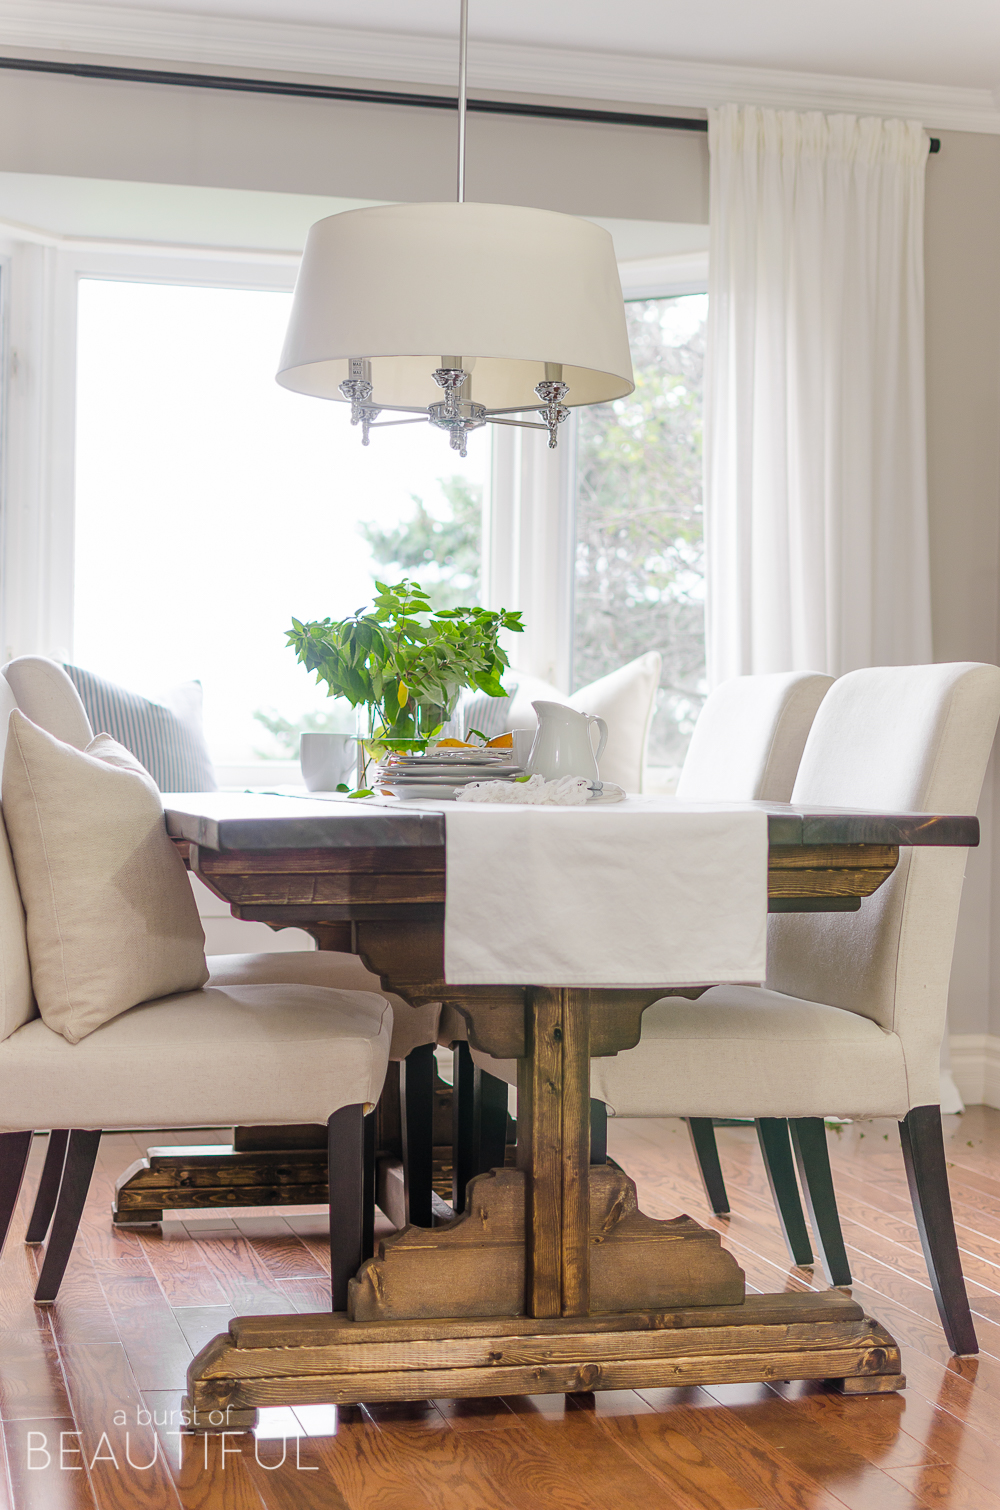 simple modern farmhouse dining room updates farm style kitchen table A bright and inviting dining room boasts simple farmhouse style with a DIY farmhouse dining table